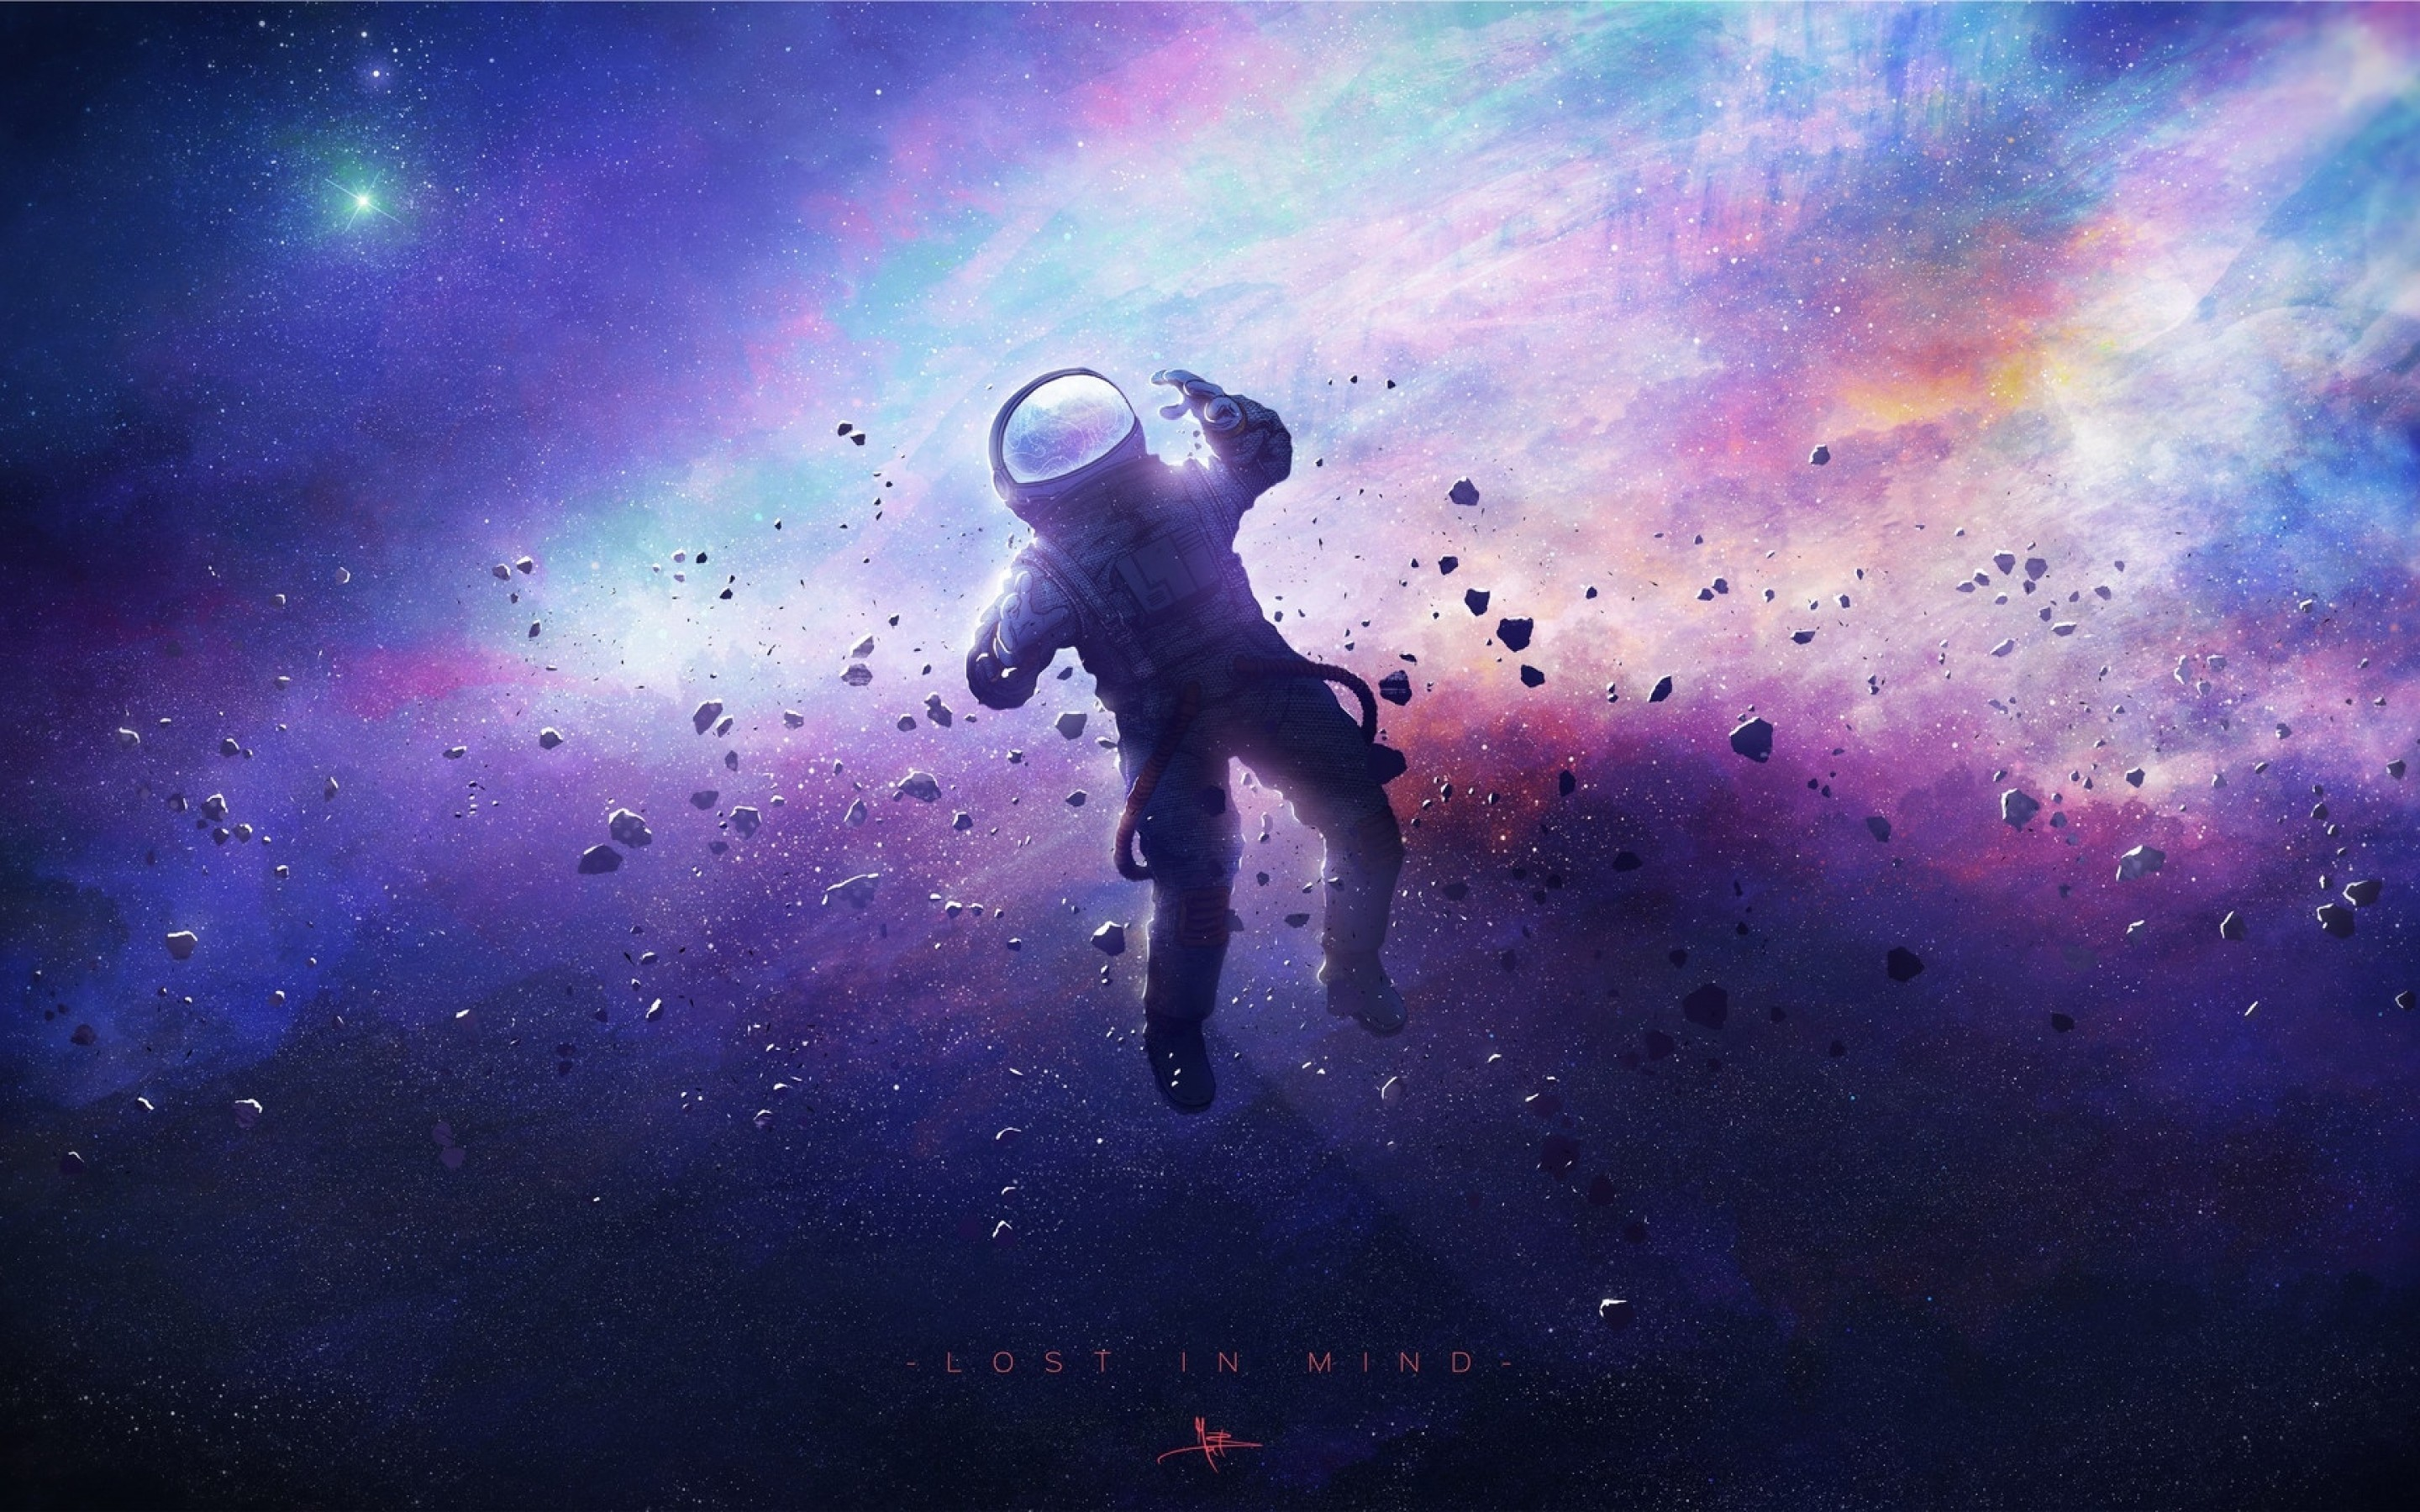 Astronaut 4k Wallpapers For Your Desktop Or Mobile Screen Free And Easy To Download